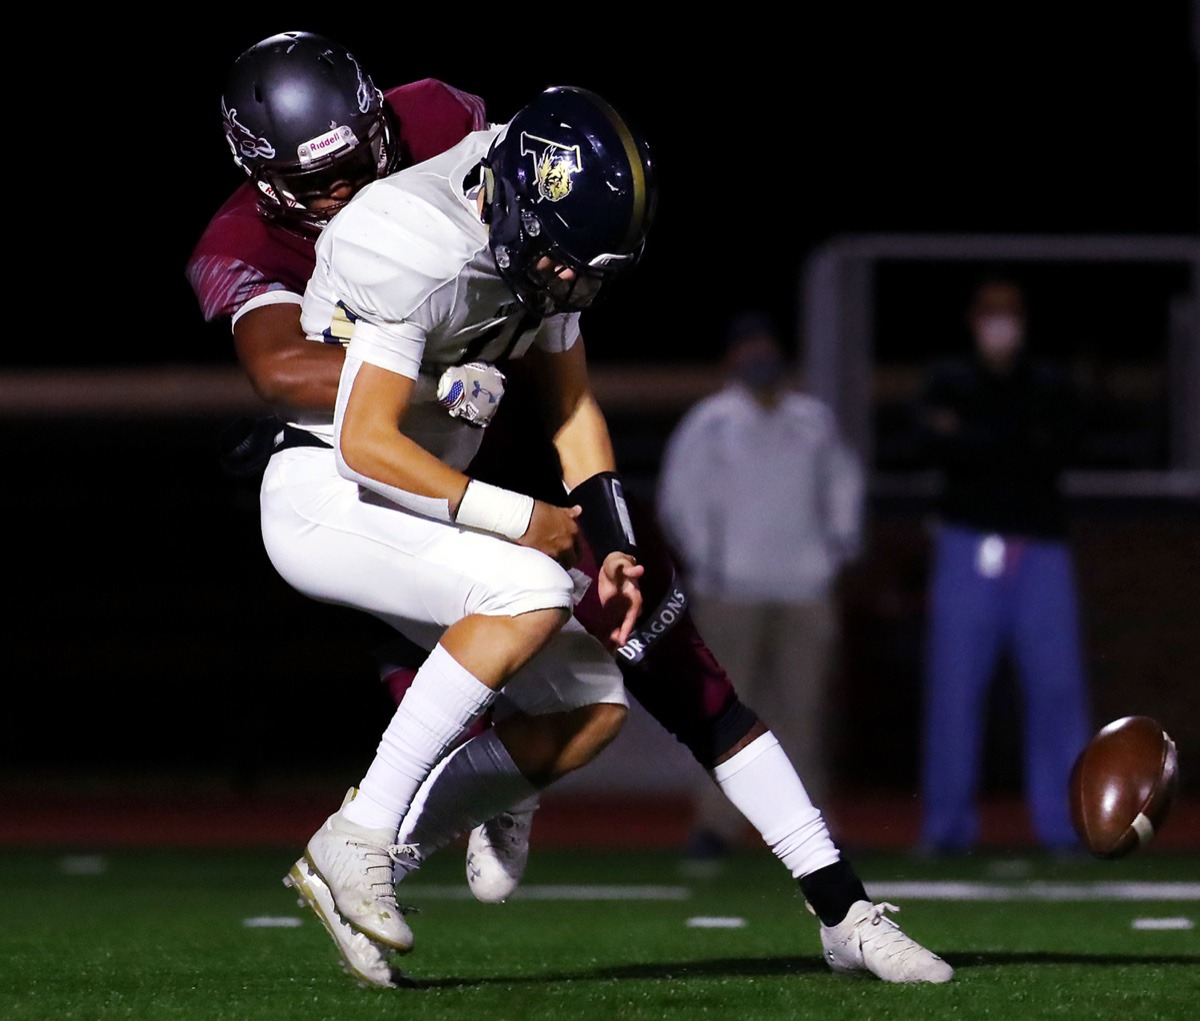 <strong>Arlington quarterback Zach Baker (15) gets the ball knocked out of his hands by a Collierville defender during a Nov. 13, 2020, road game.</strong> (Patrick Lantrip/Daily Memphian)